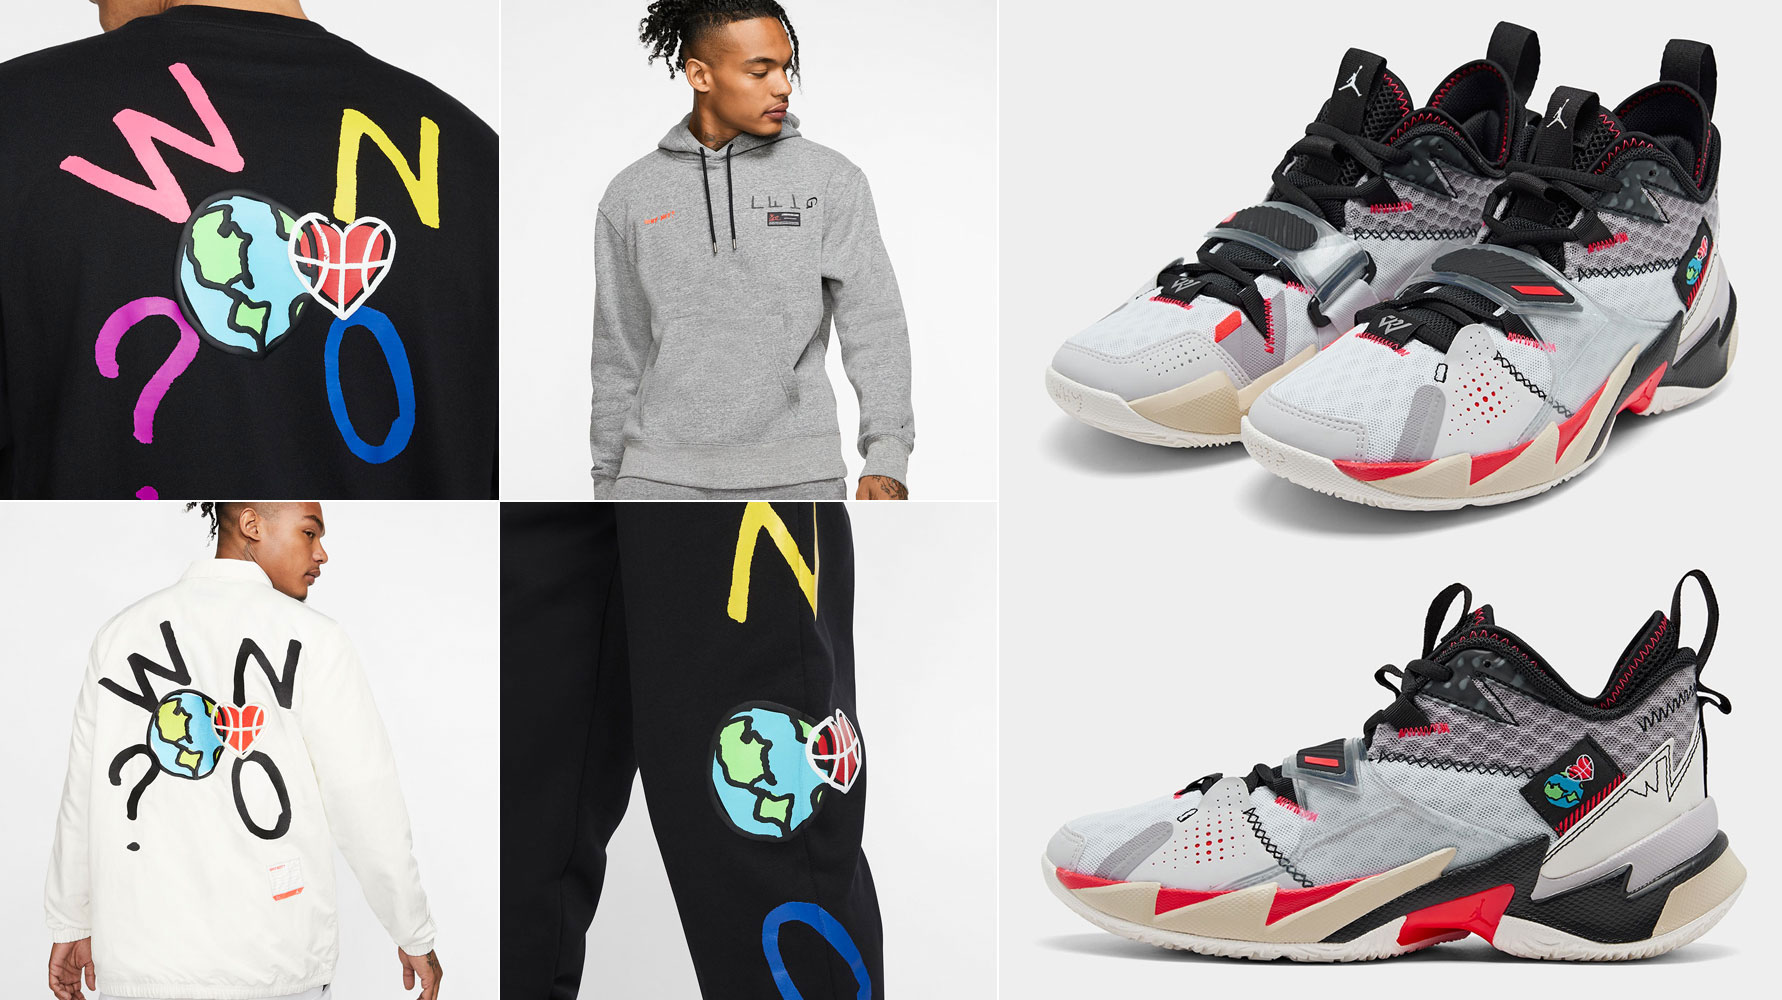 jordan-why-not-zer03-unite-apparel-outfits